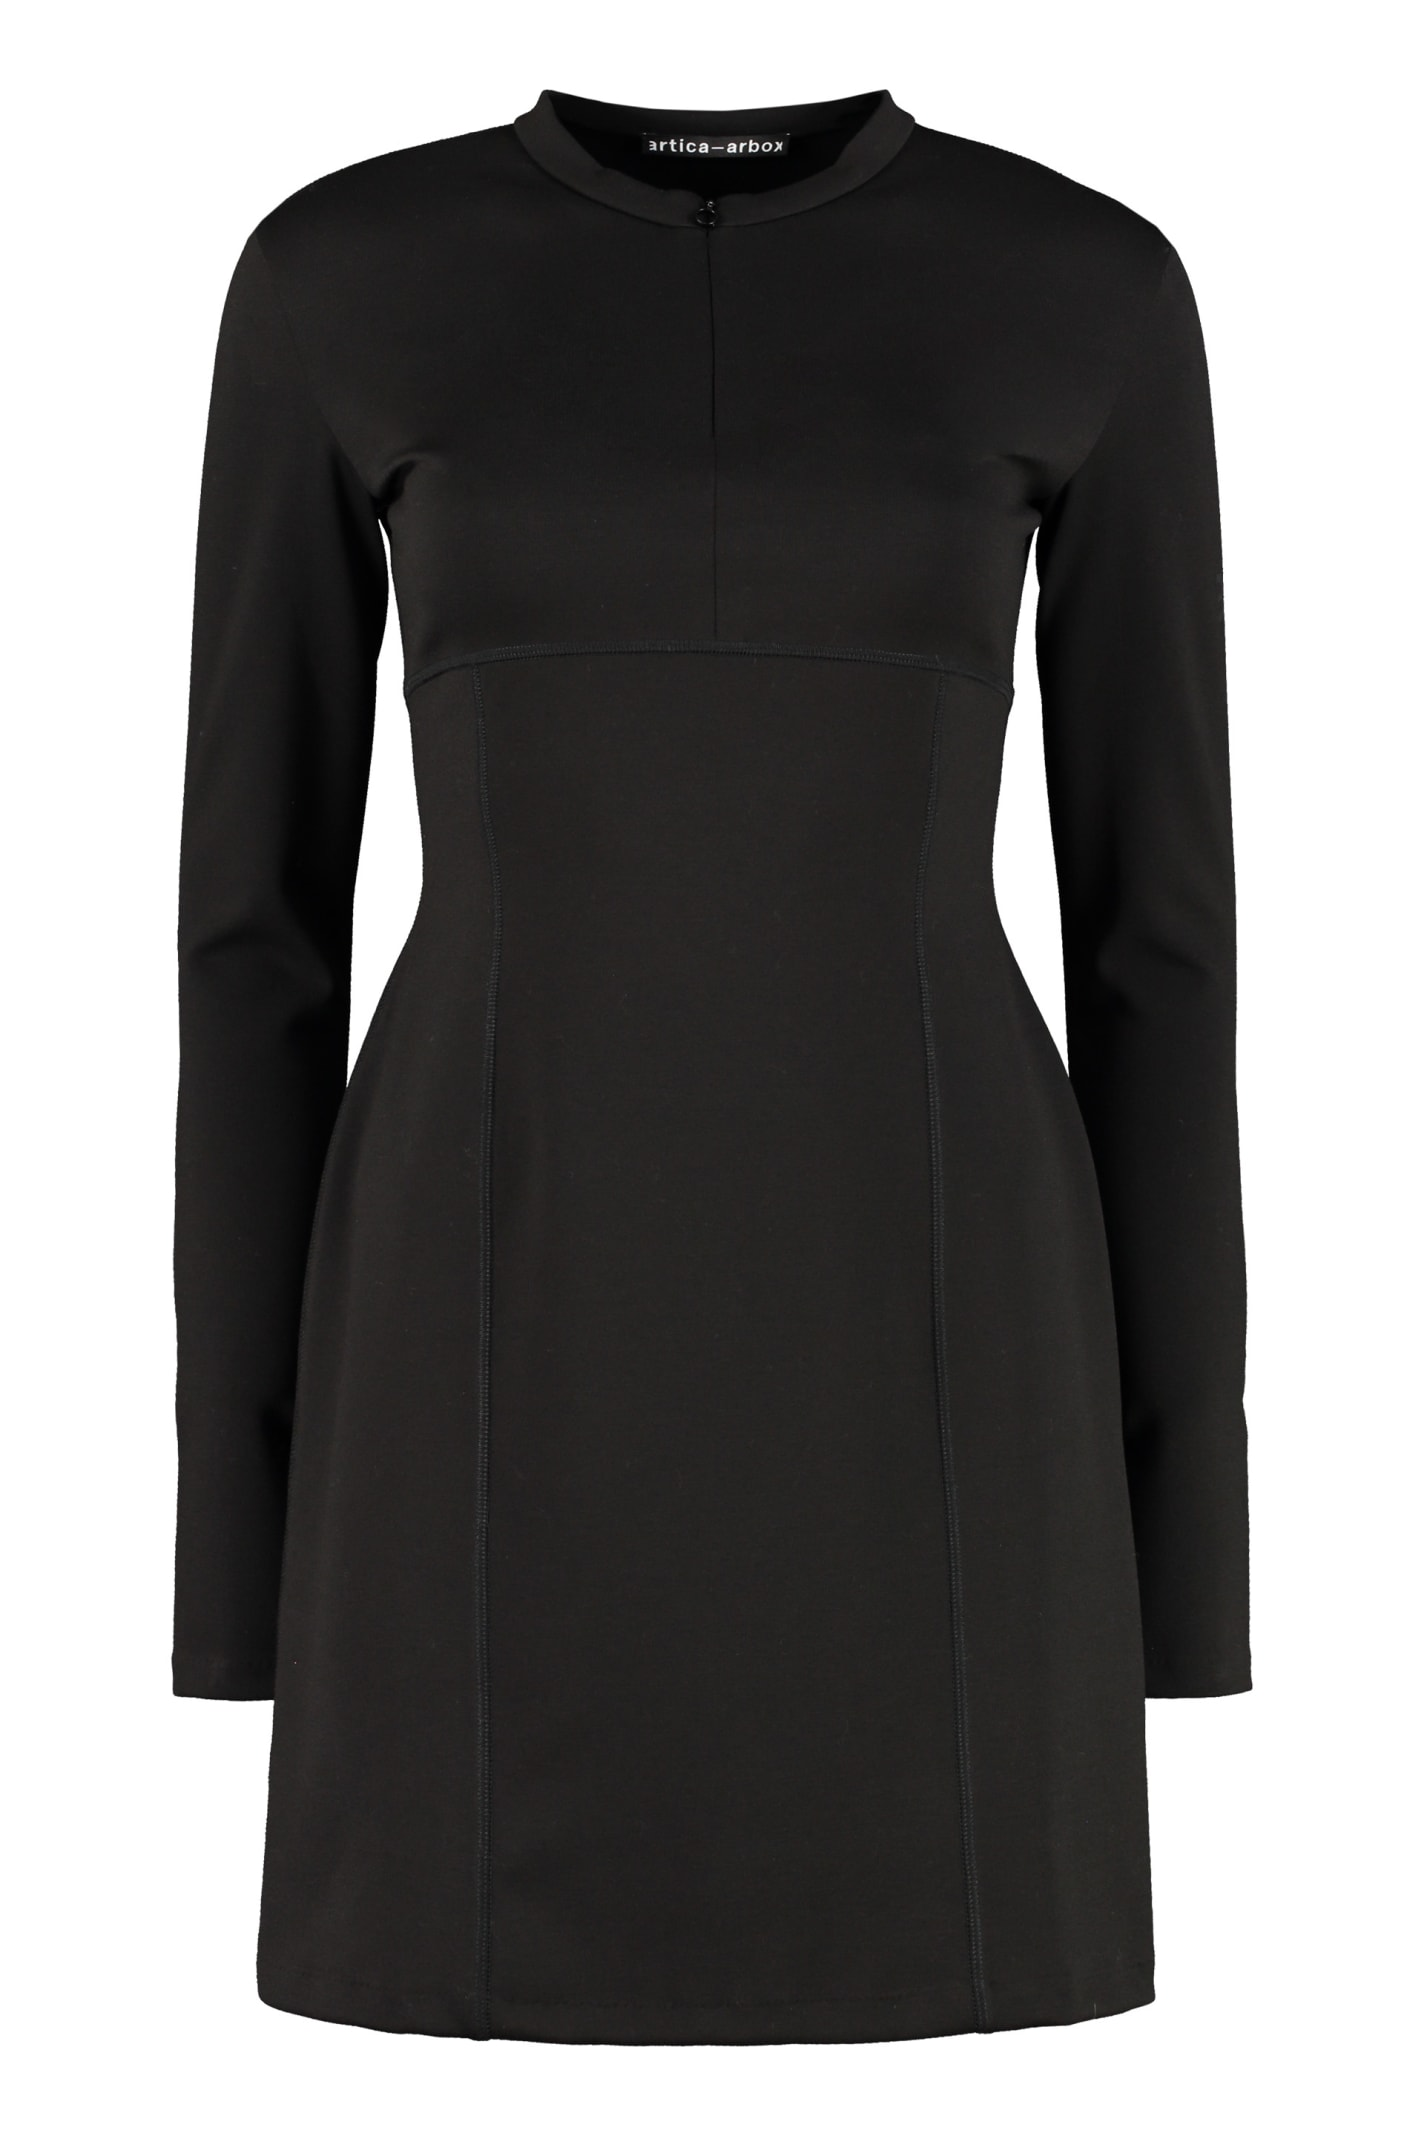 Buy Artica Arbox Jersey Sheath Dress online, shop Artica Arbox with free shipping